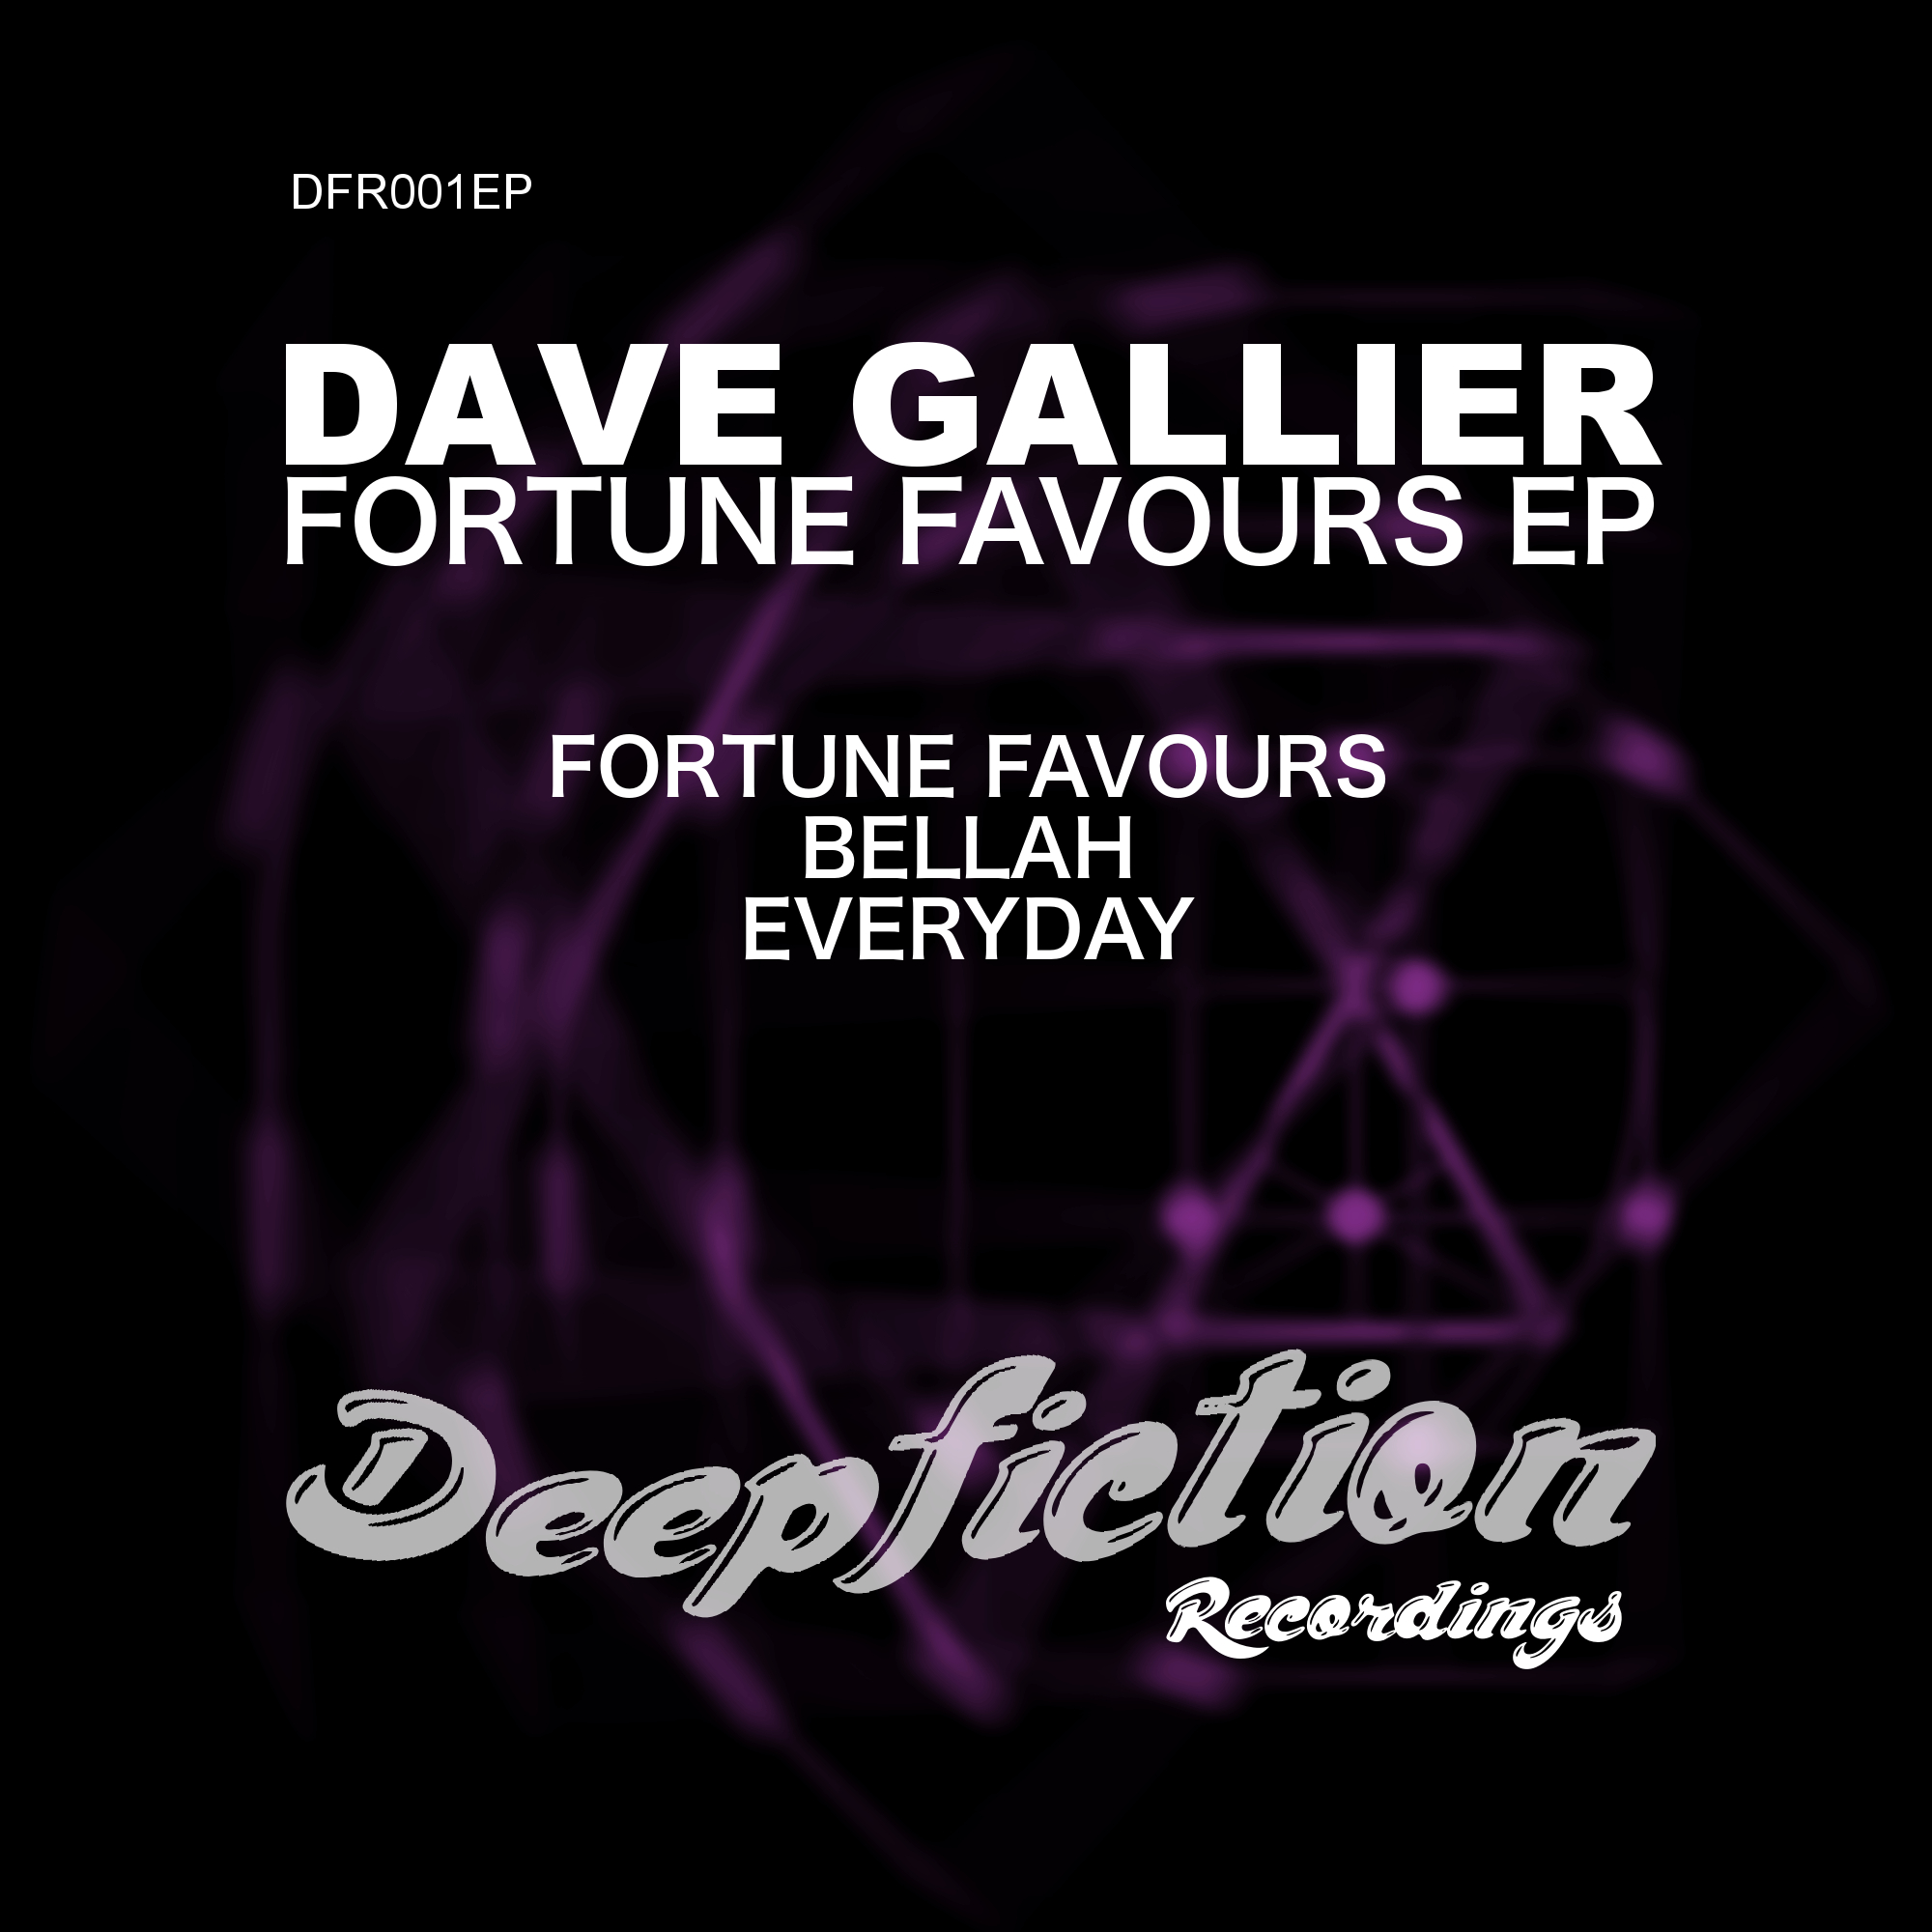 Dave Gallier - Fortune Favours EP